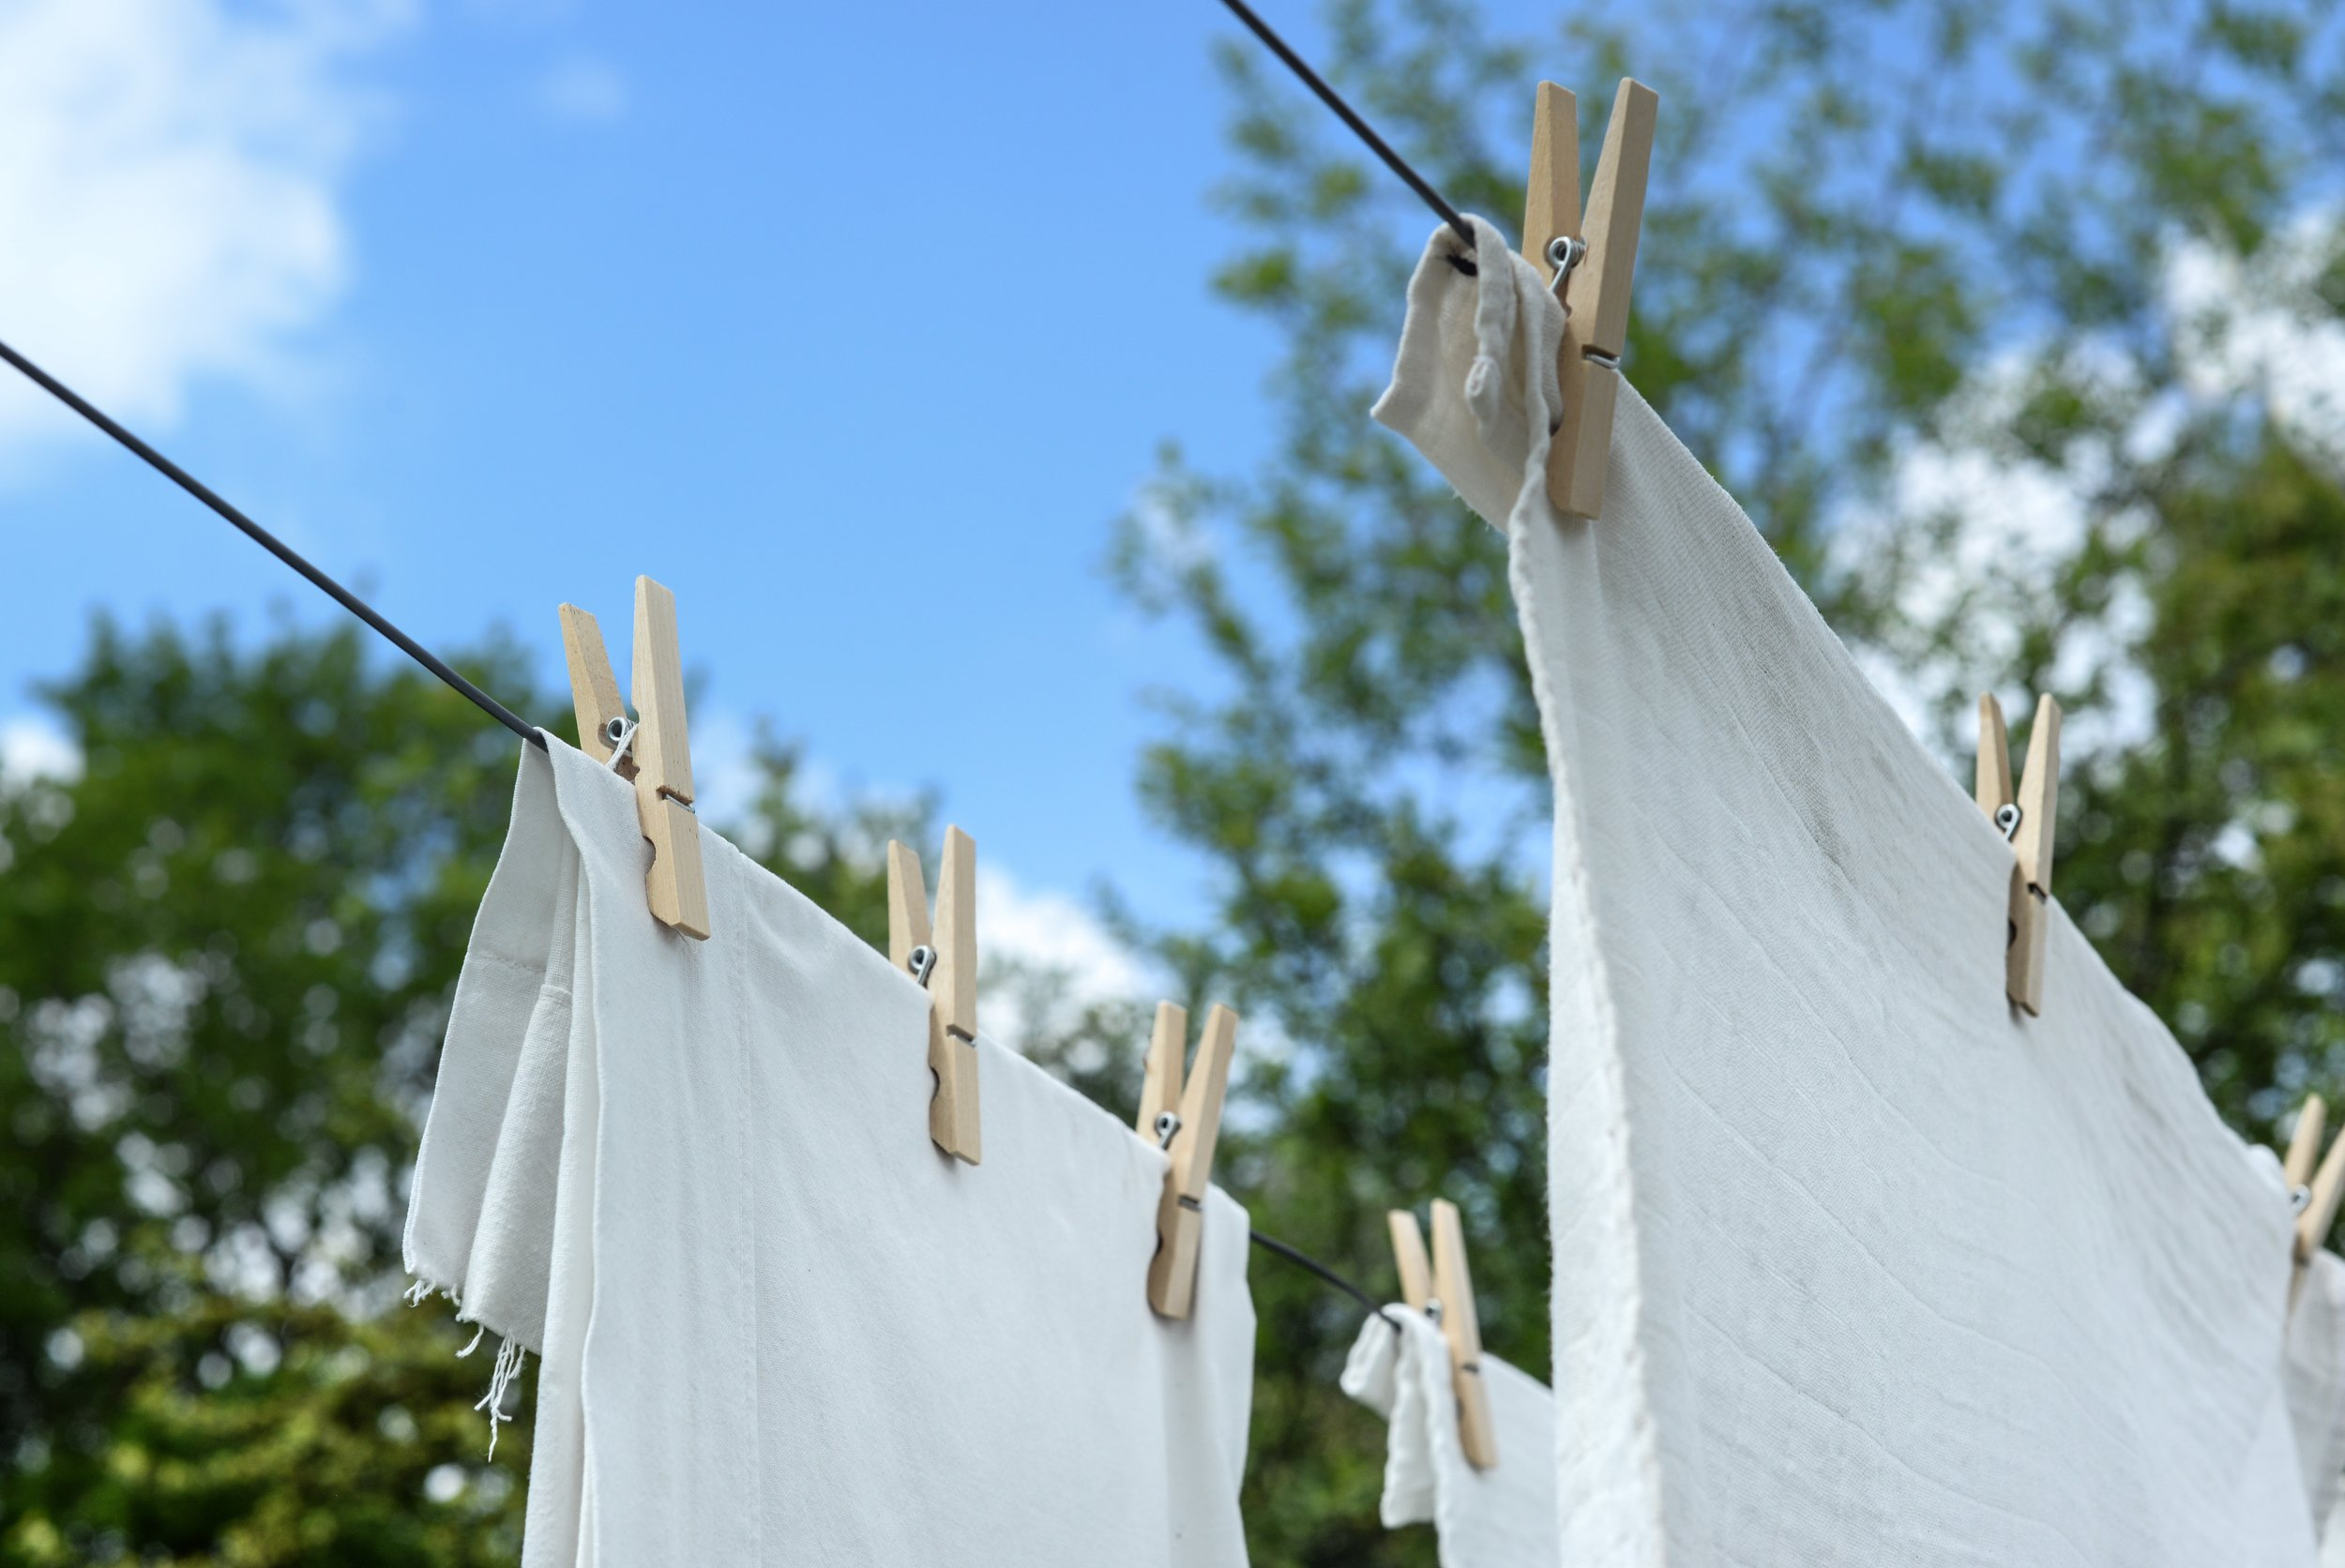 close-up-clothes-clothesline-1122167.jpg